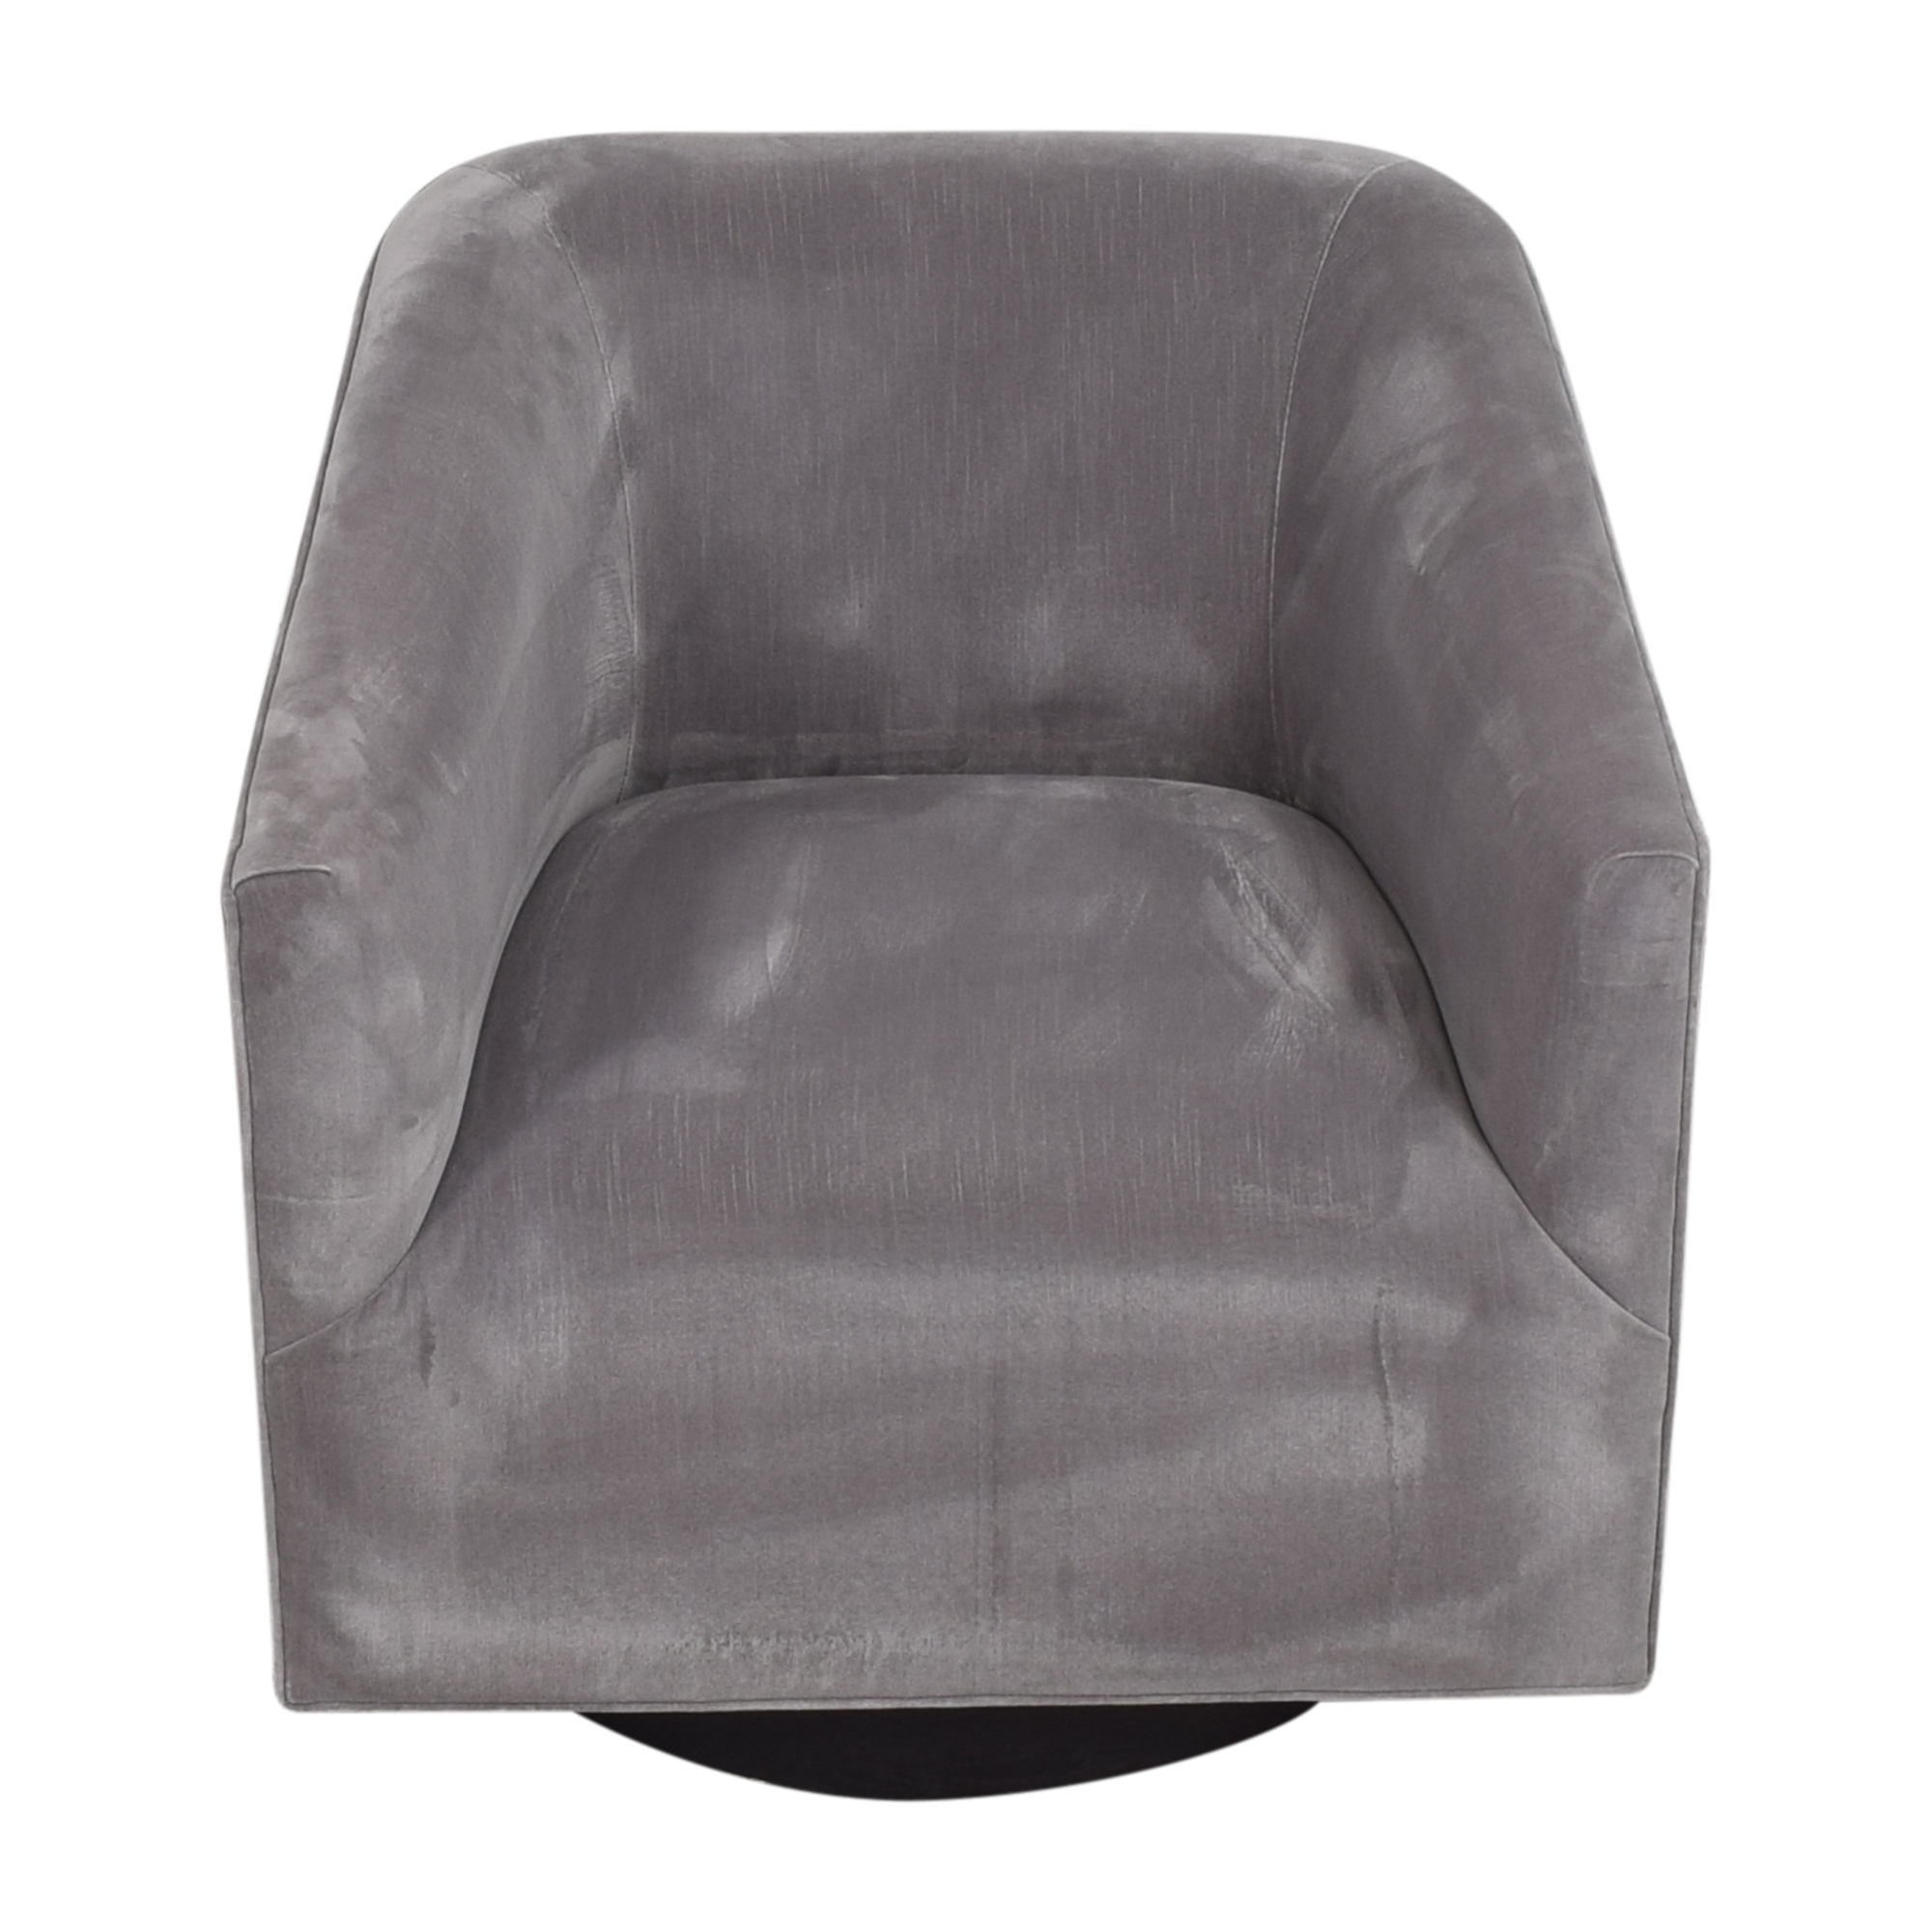 Restoration Hardware Restoration Hardware 1950s Italian Shelter Arm Swivel Chair pa